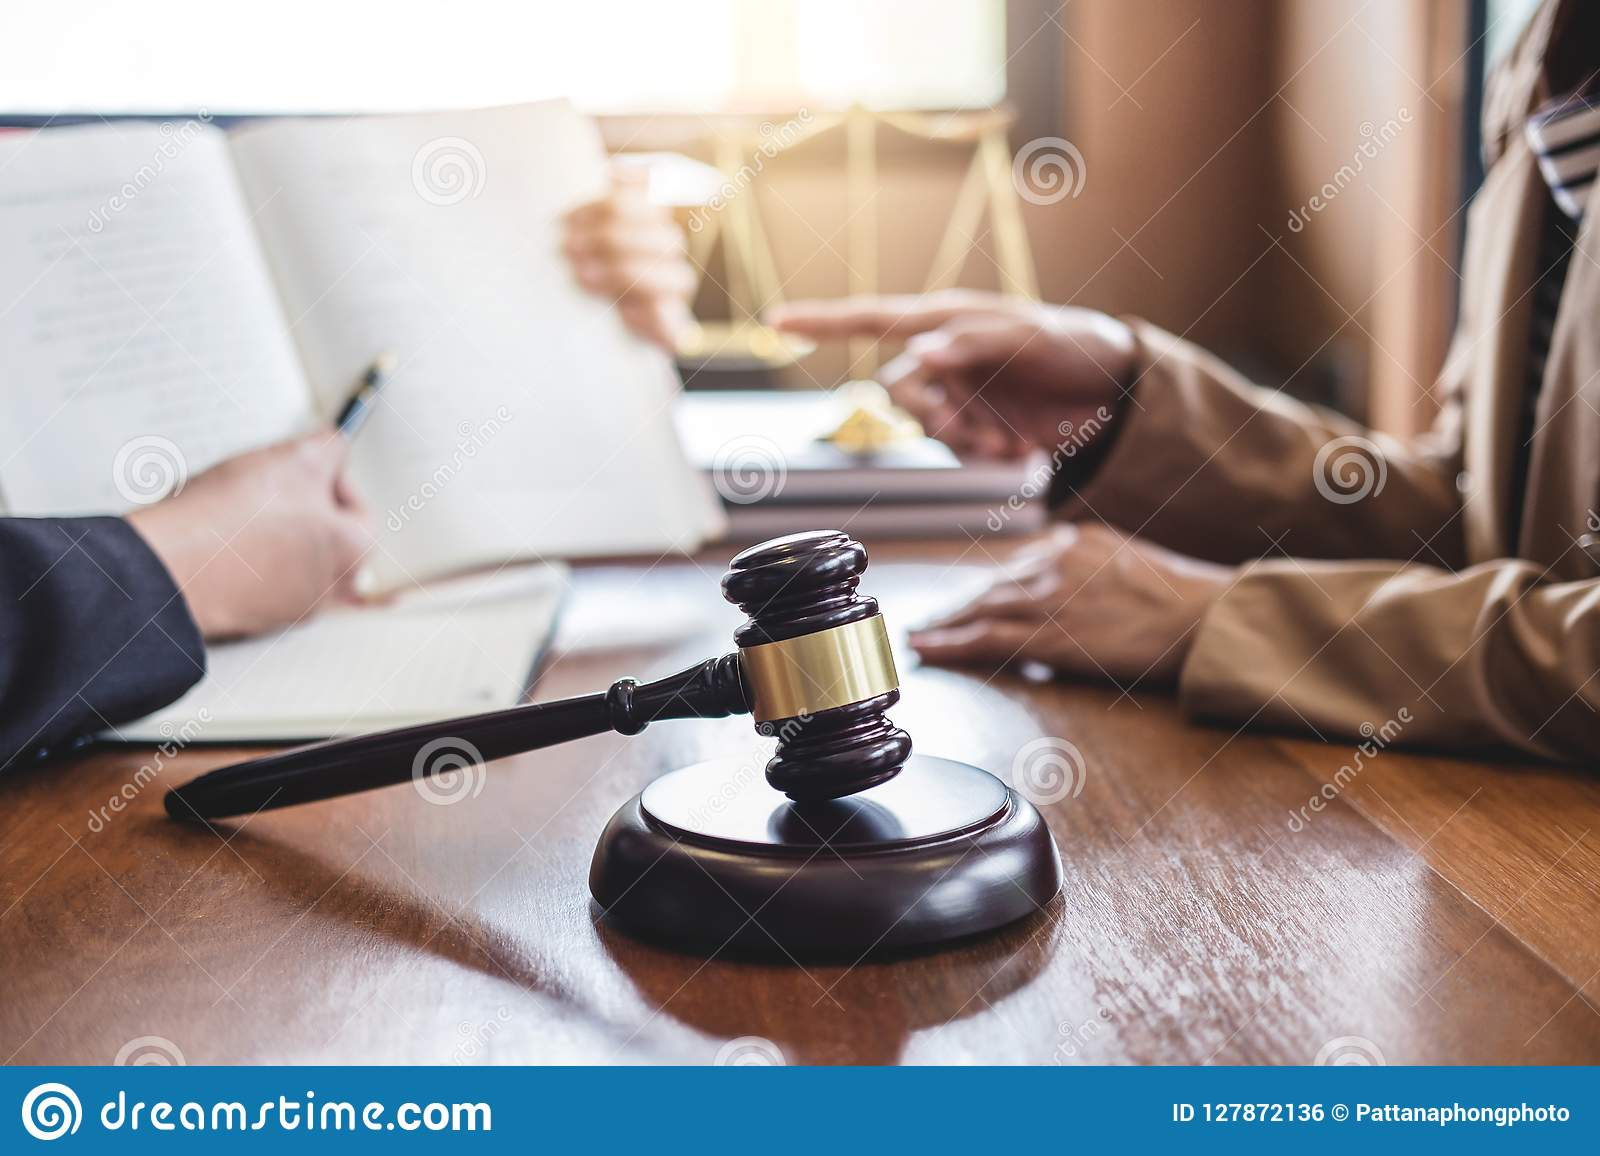 Judge gavel with scales of justice, Businesswoman and male lawyers or counselor discussing contract papers at law firm in office.